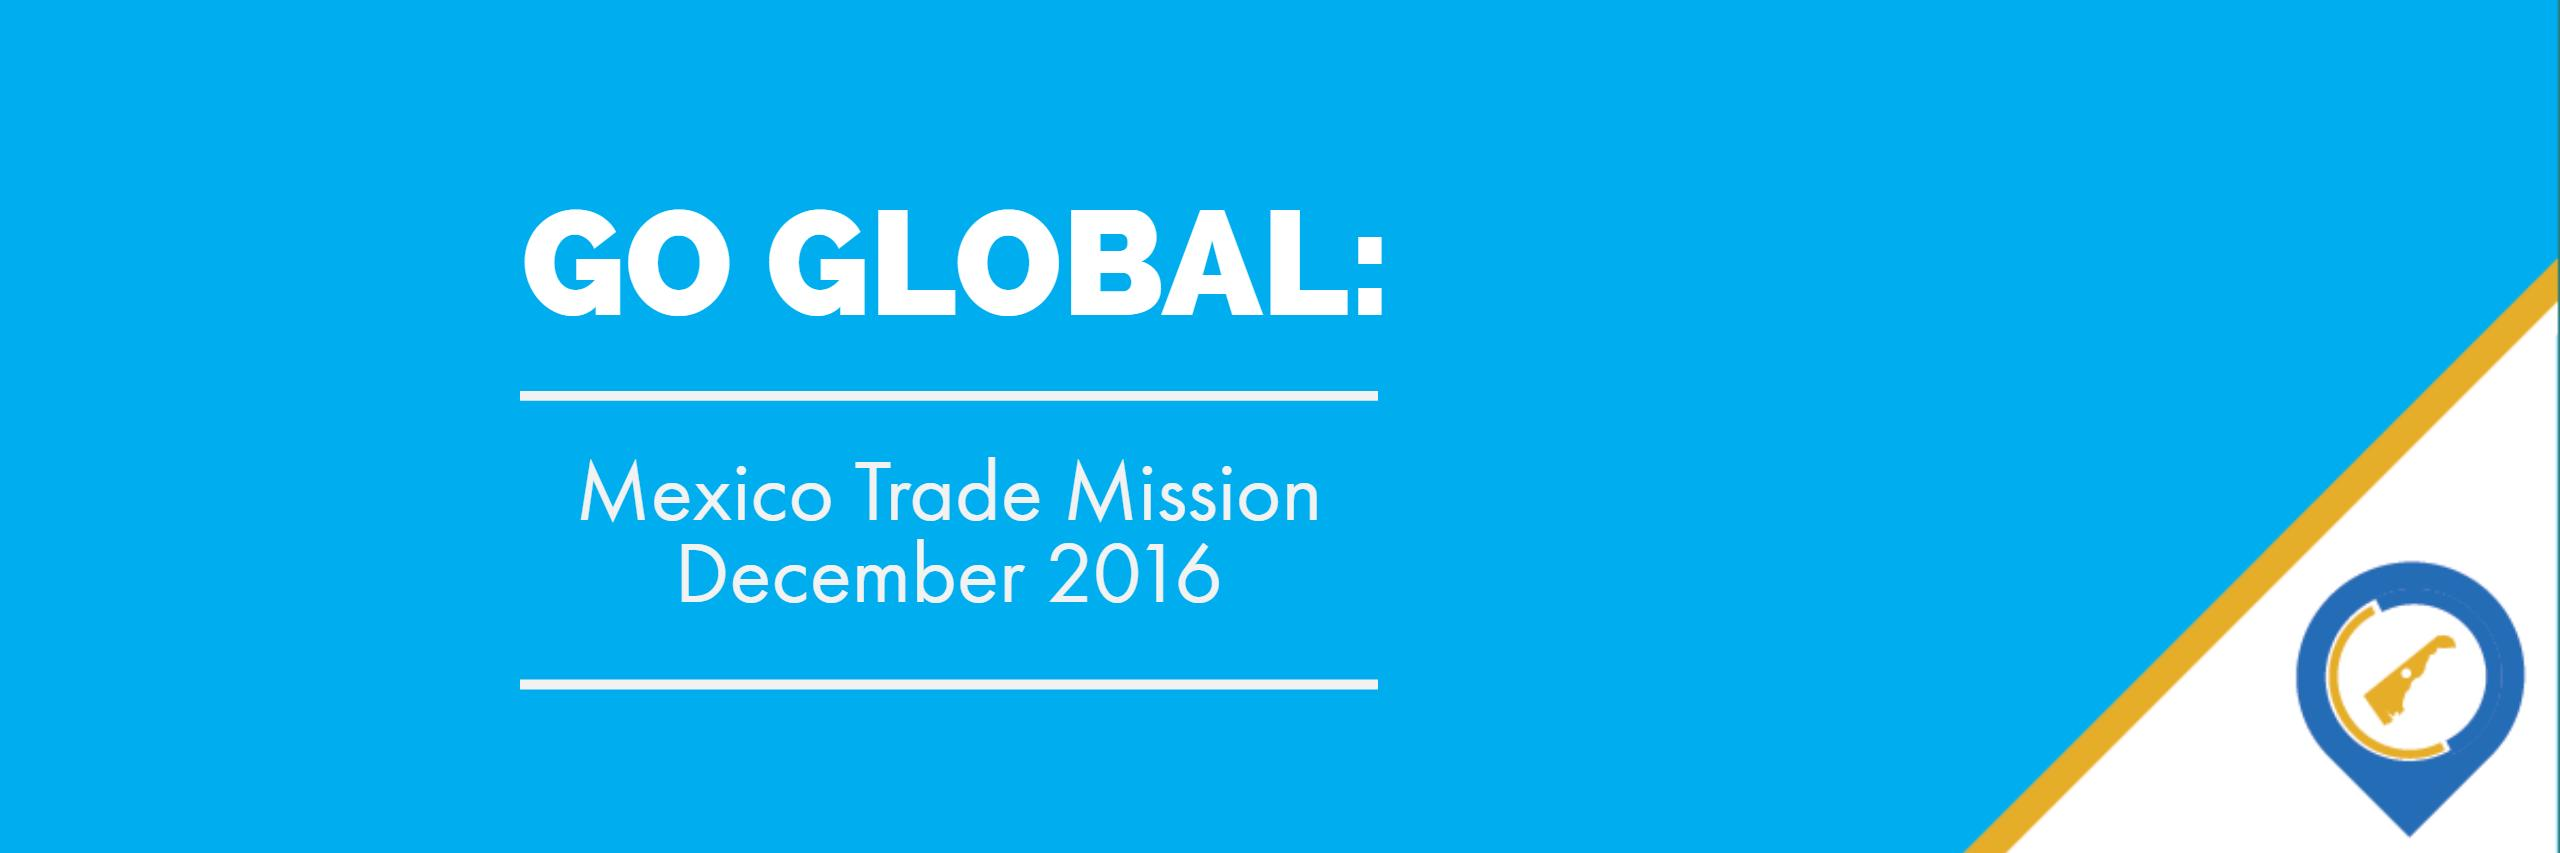 Go Global: Mexico Trade Mission opportunity this December